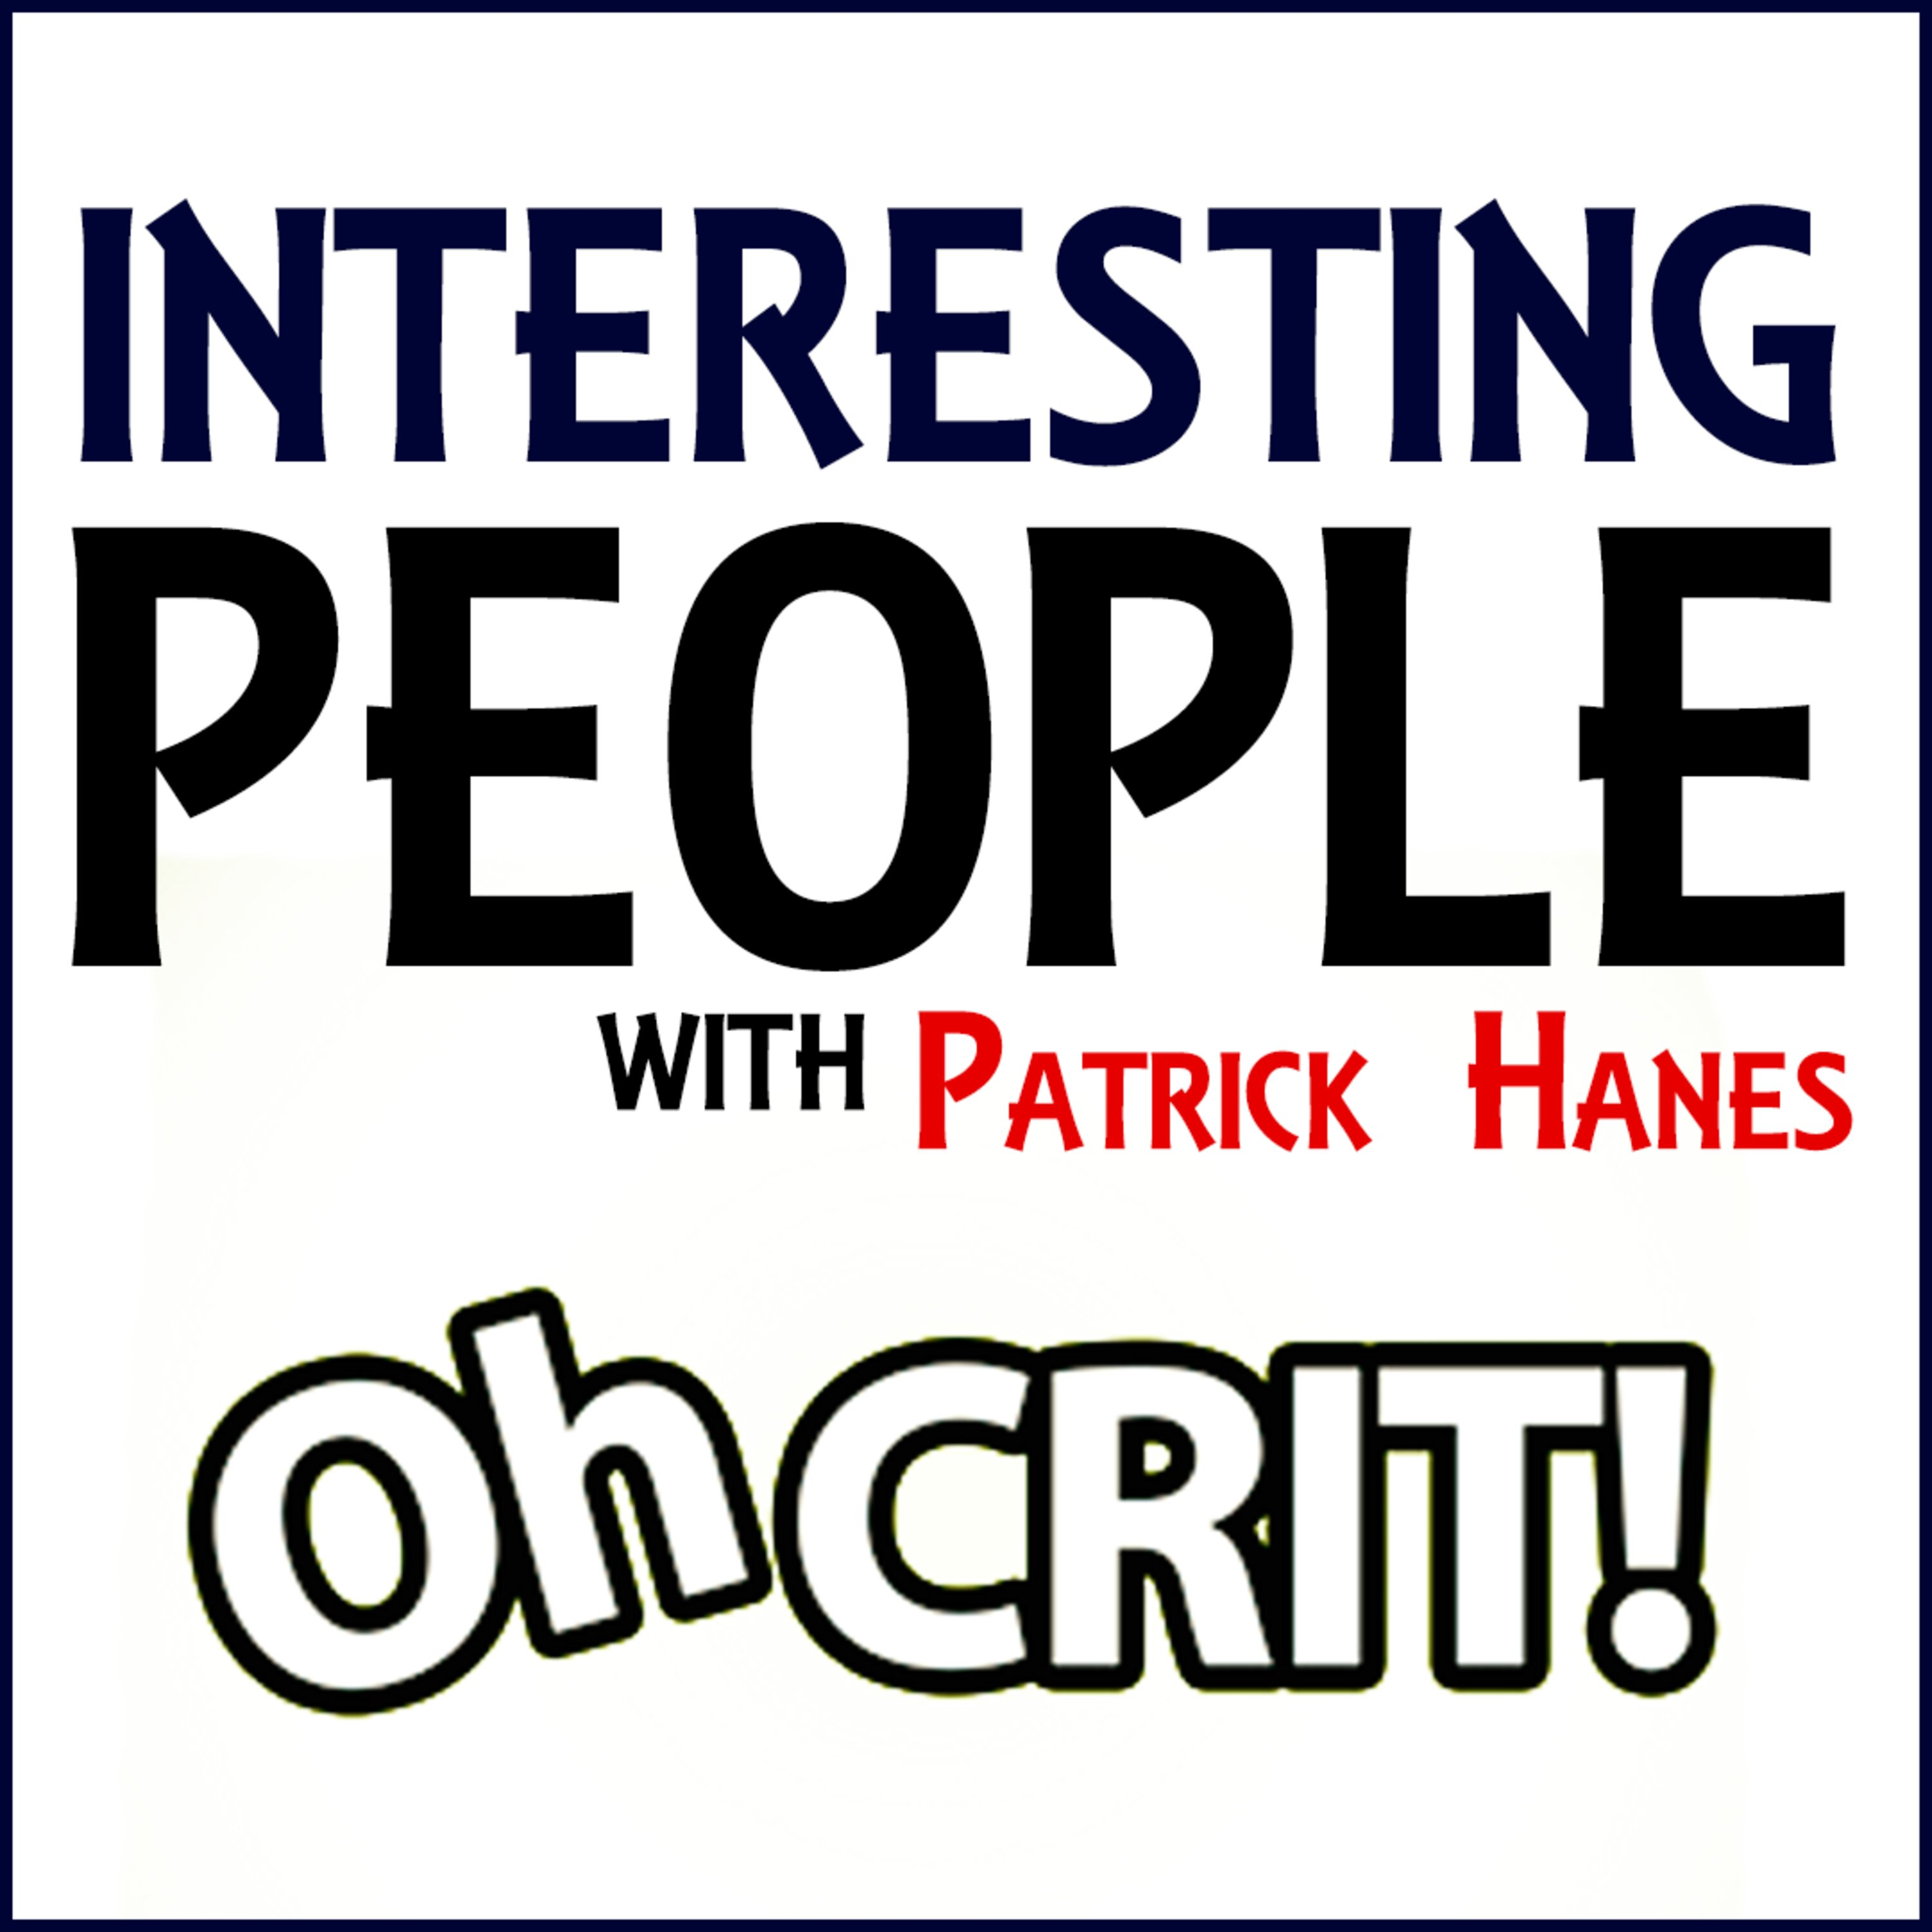 Interesting People #77: Oh Crit!